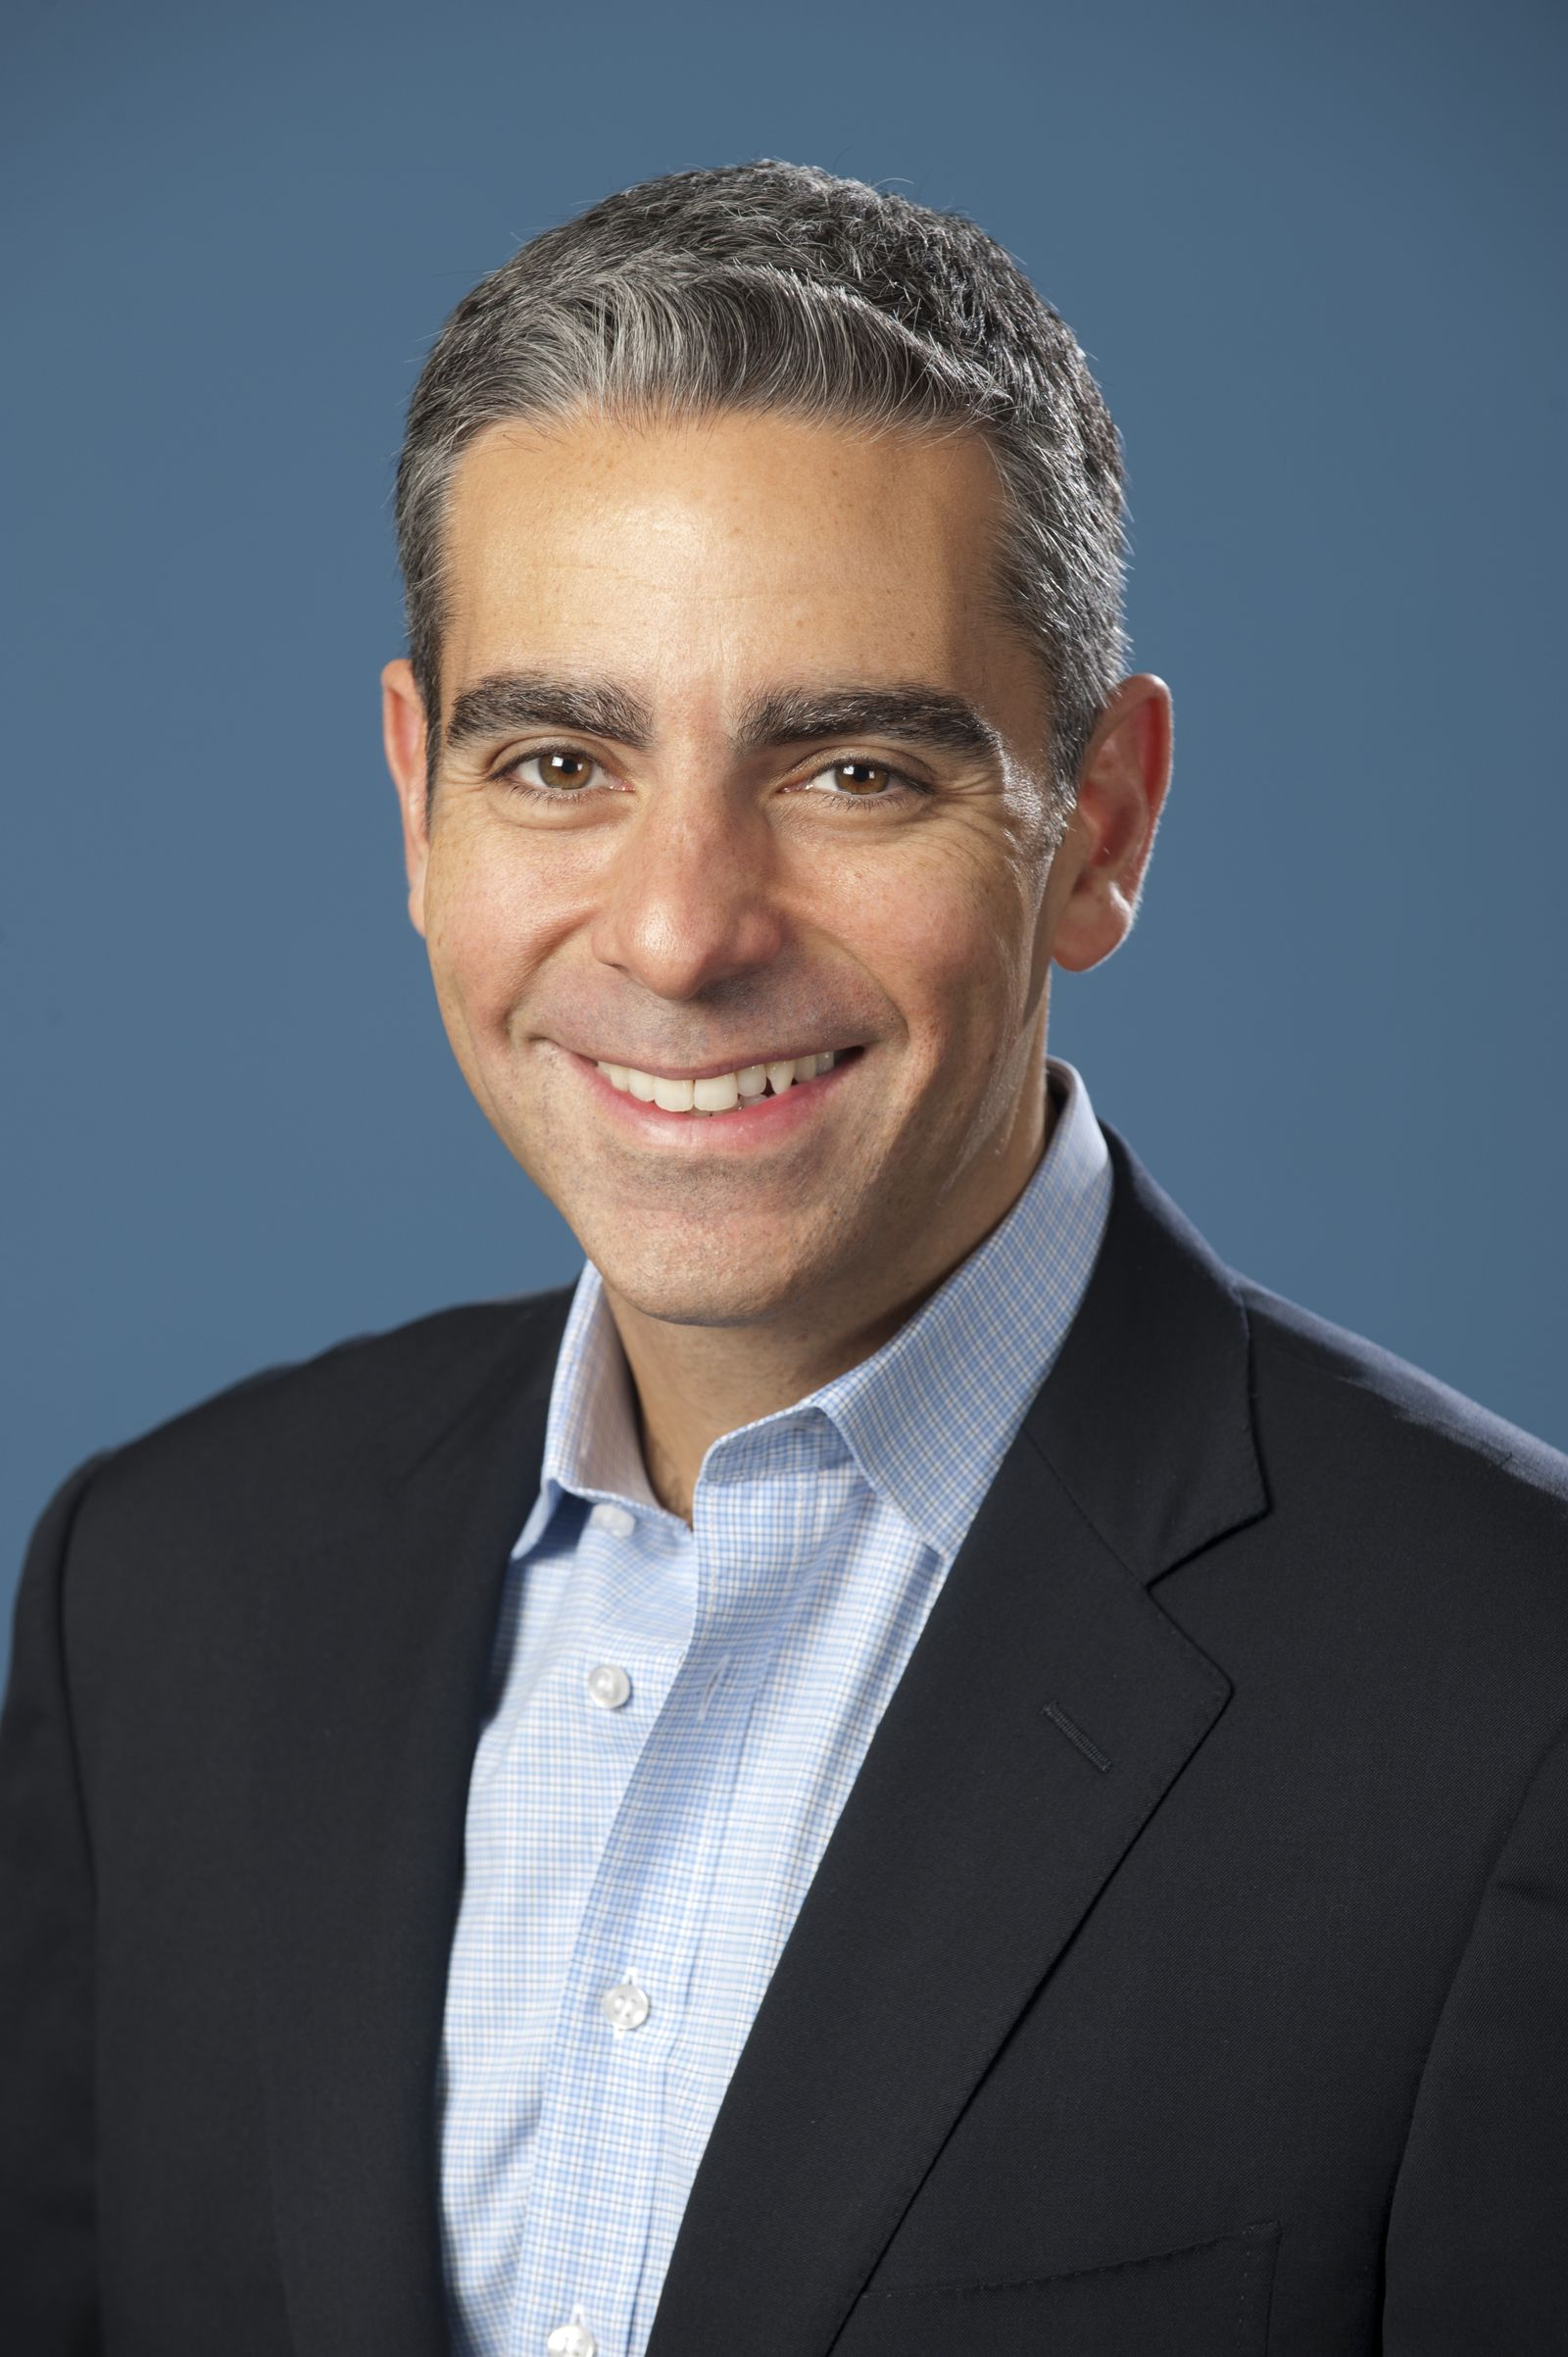 David Marcus / CEO von PayPal